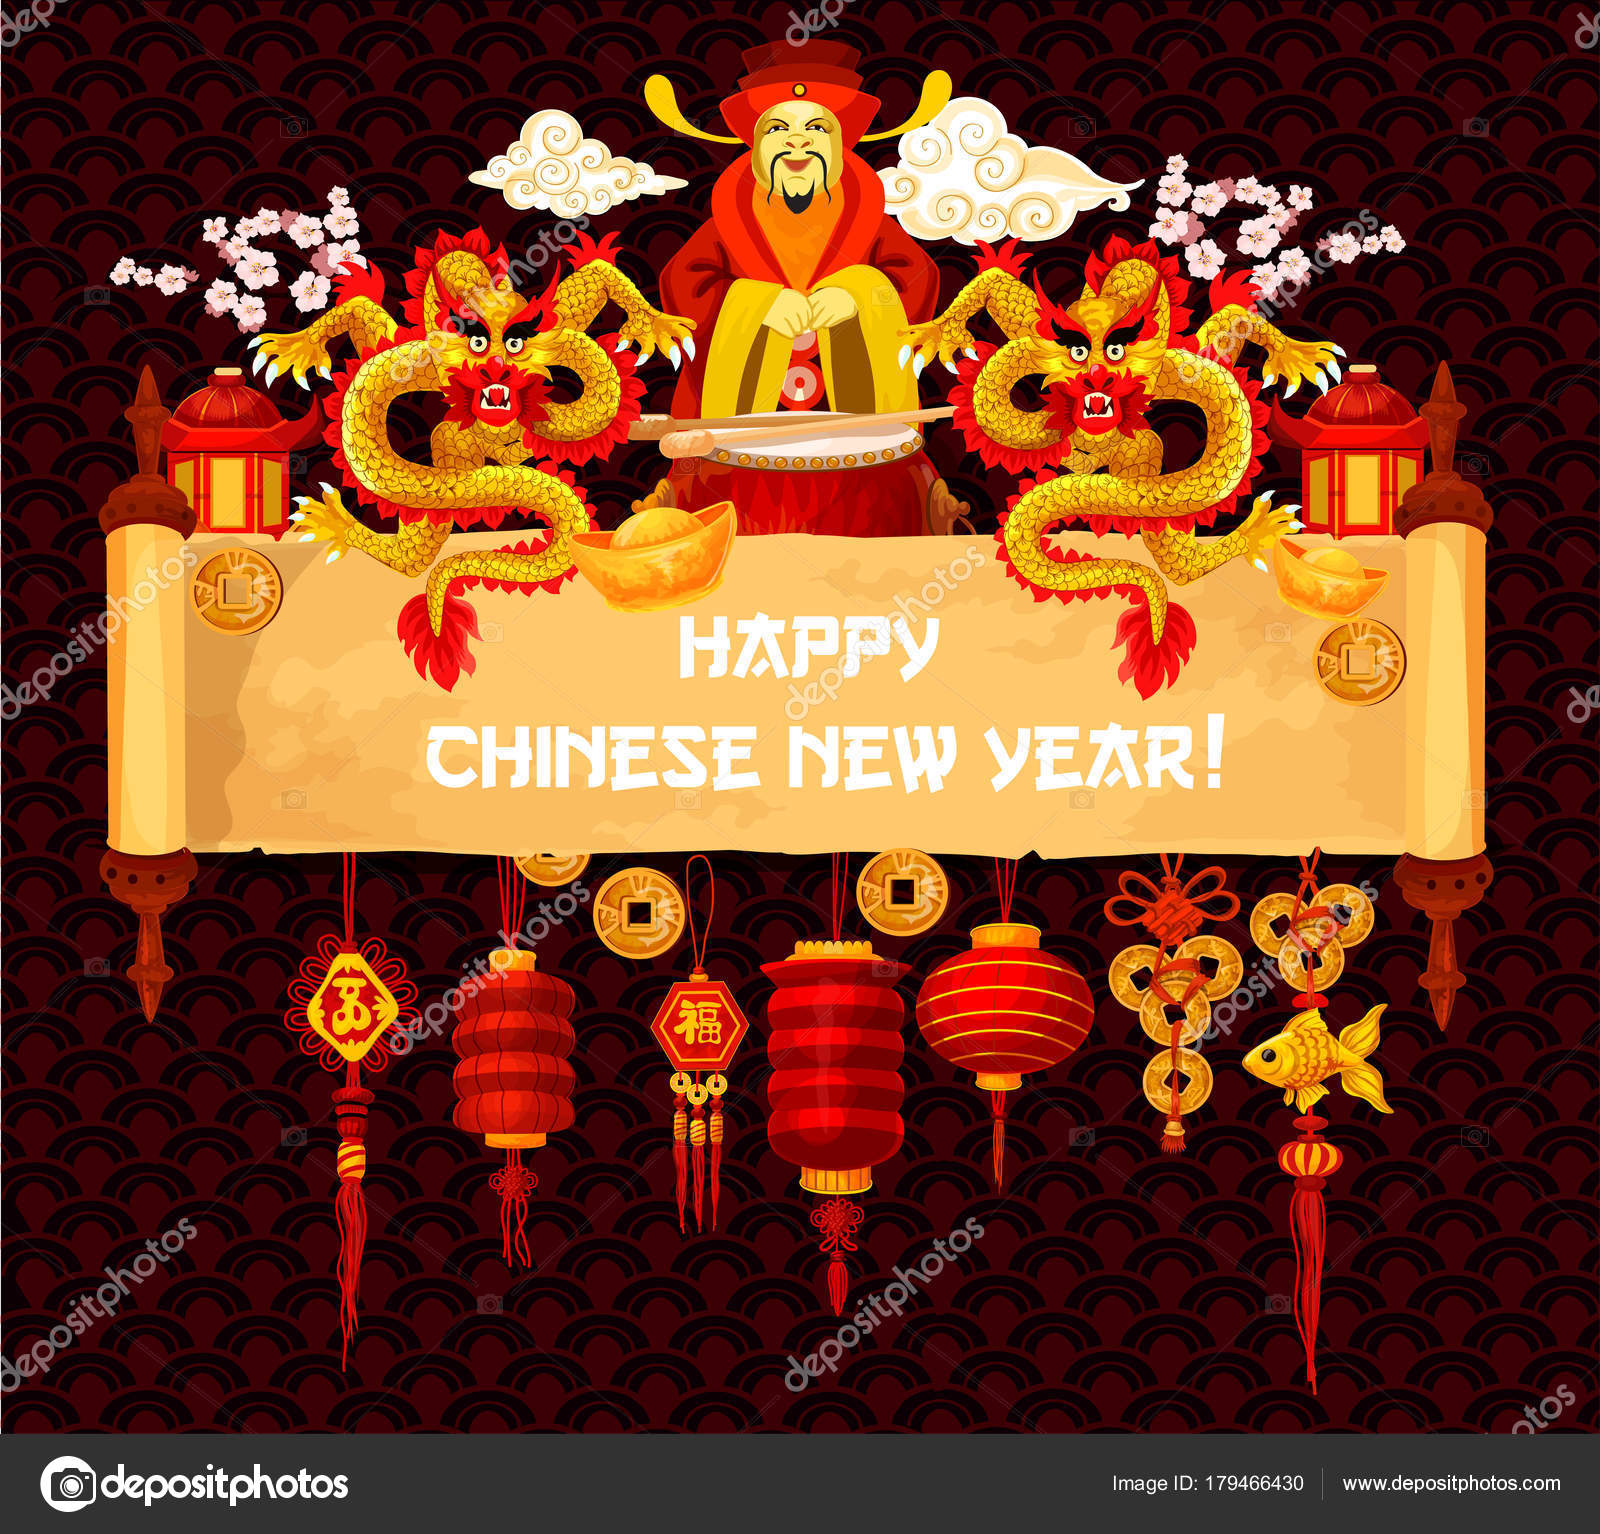 Chinese new year greeting card on parchment scroll stock vector chinese lunar new year greeting card on old scroll oriental lantern golden dragon gold ingot and god of wealth festive parchment decorated by lucky coin kristyandbryce Images